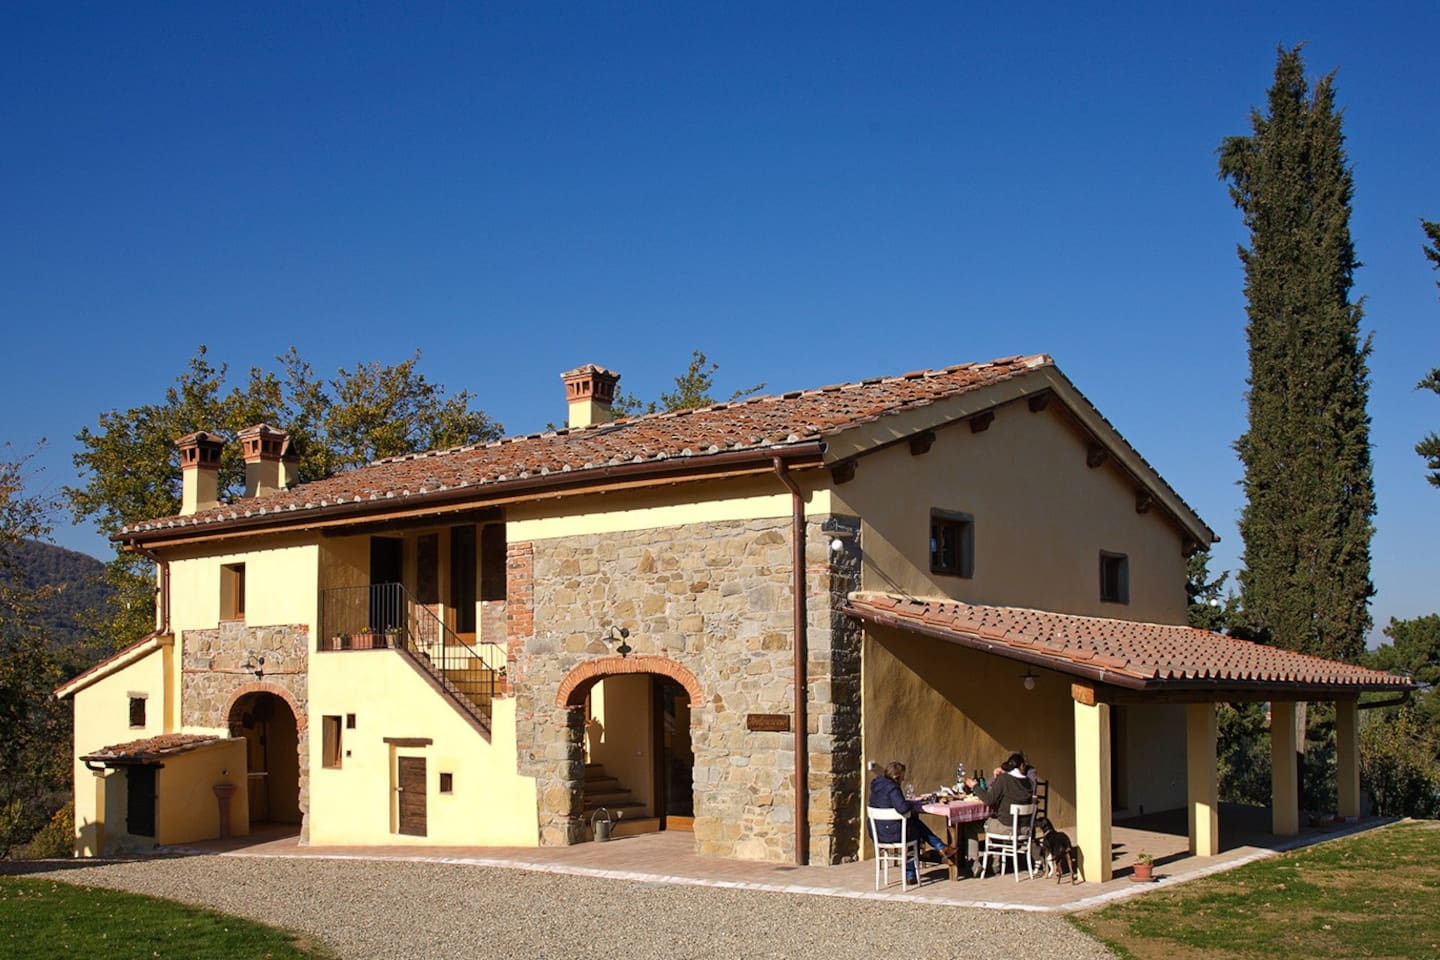 """A wonderful, old stone farm containing individual apartments with everything you need"" Ingrid Aug 2015"